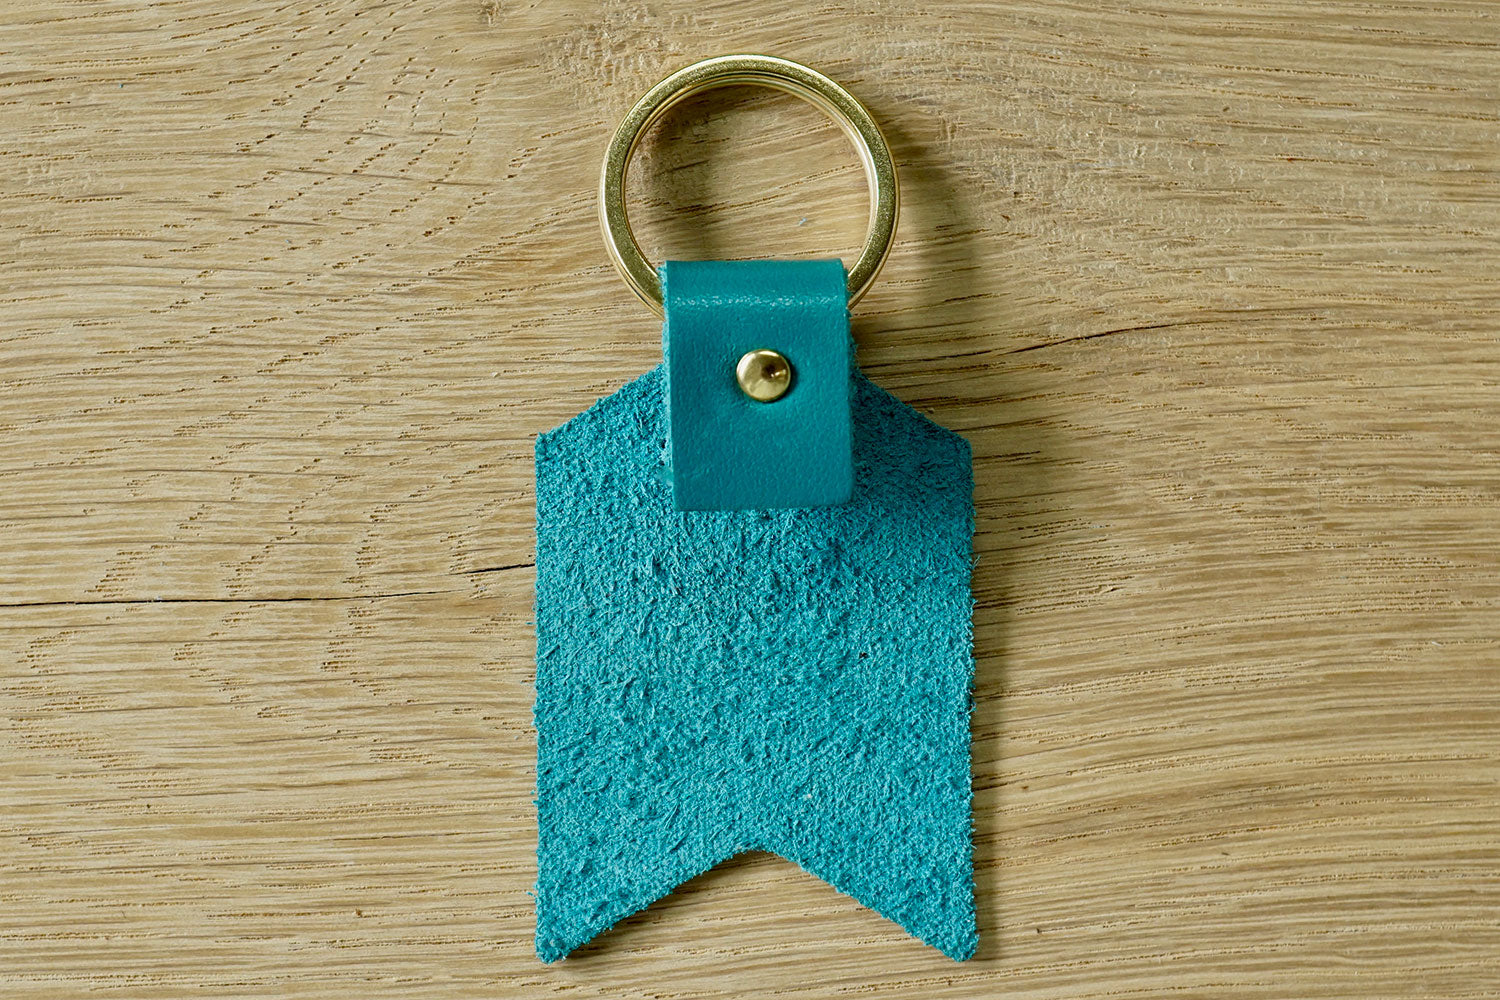 Mum keychain from Bookshell Bindery detail of back